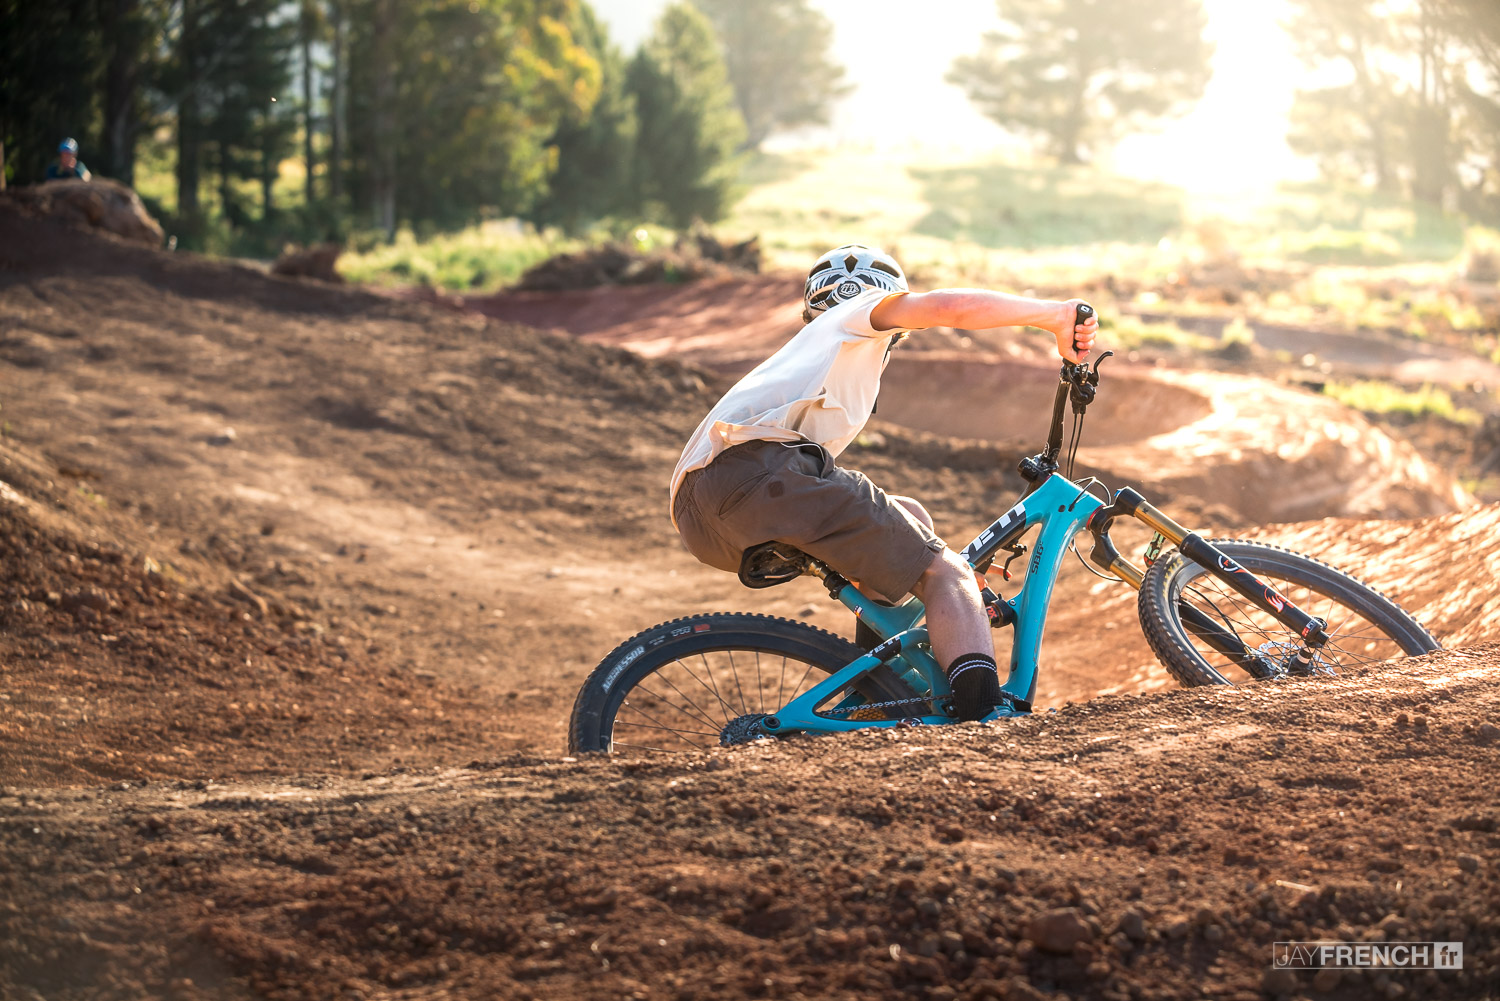 Hunter Paull rides off into the sunset down the fresh section of 'Duncan's Donuts'.